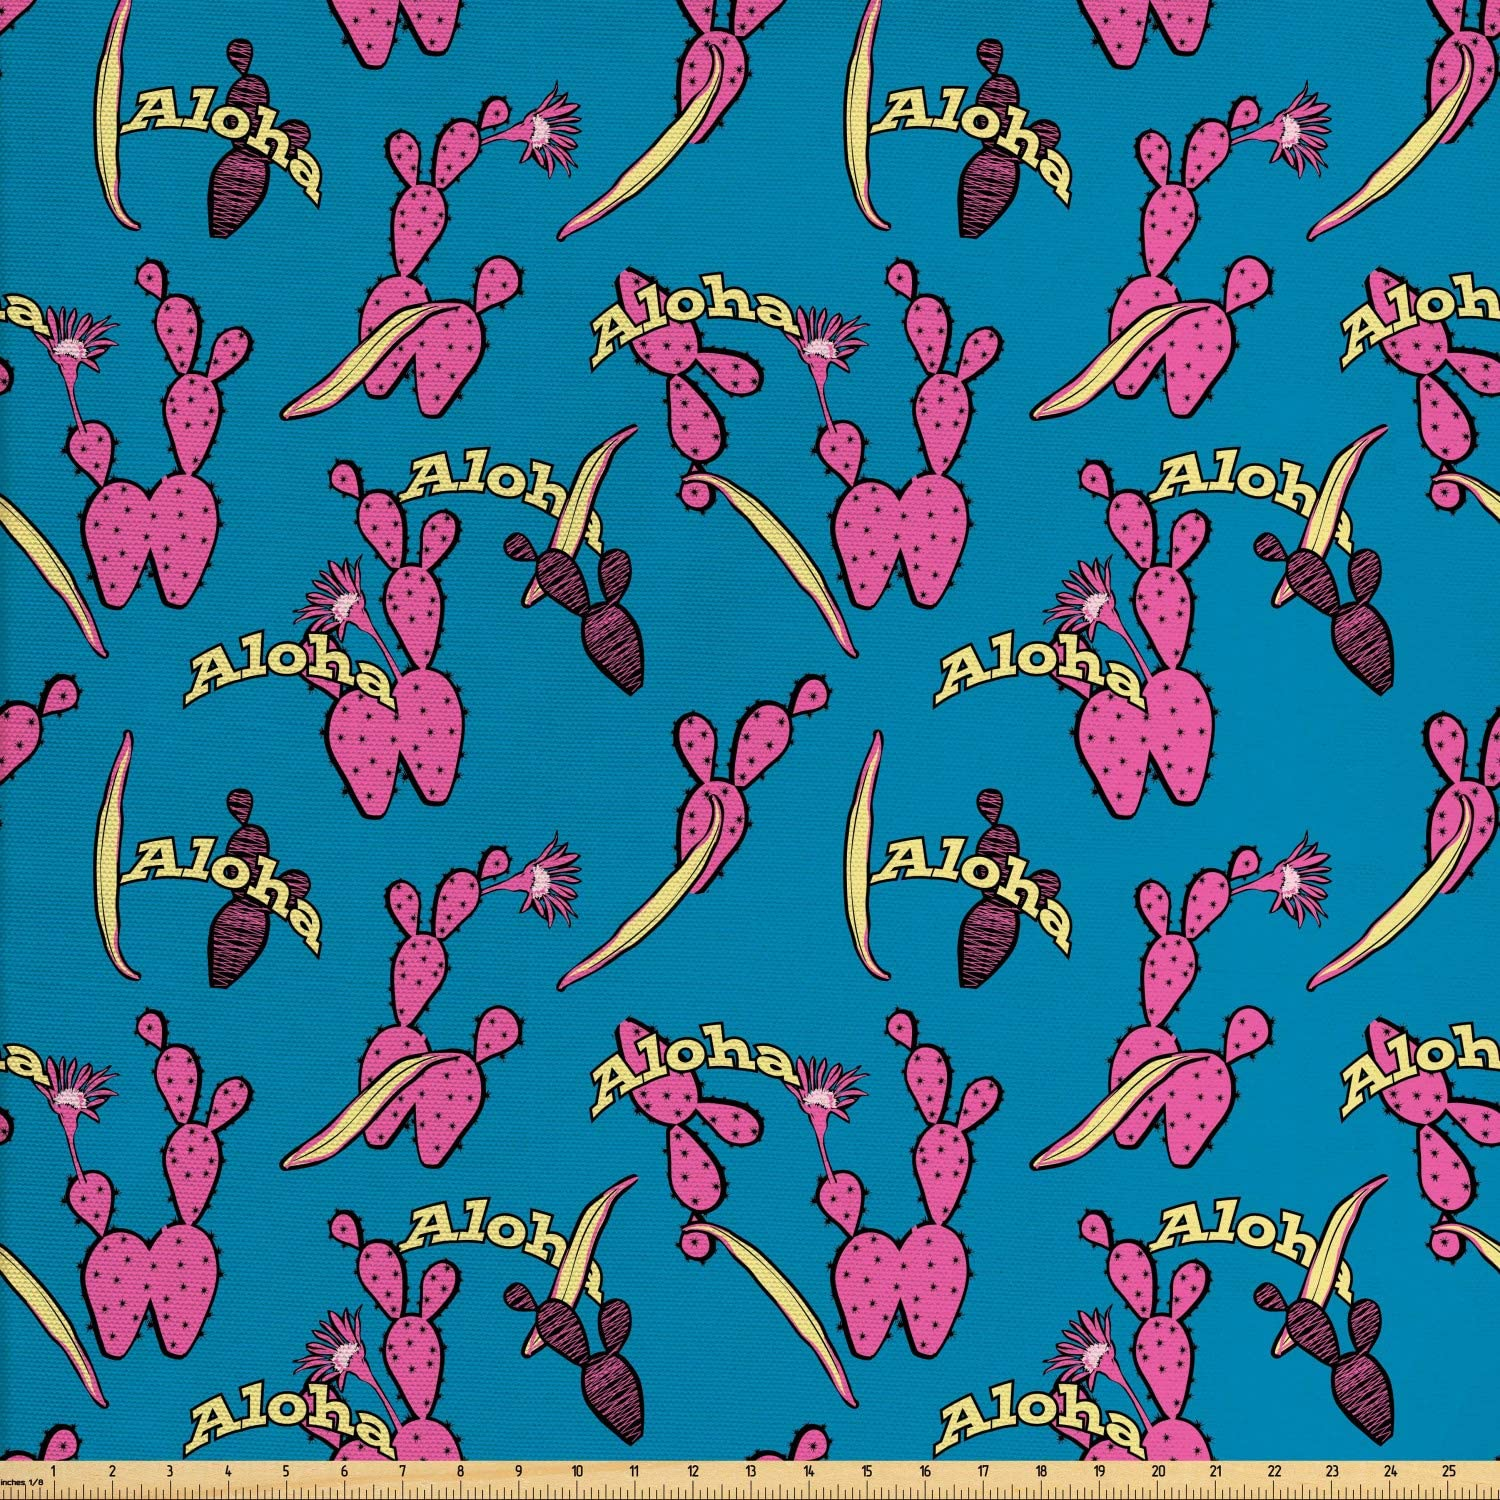 Ambesonne Aloha Fabric by The Yard, Cartoon Style Demonstration of Colorful Spiky Cactus with Typography, Decorative Fabric for Upholstery and Home Accents, 1 Yard, Sea Blue Pink and Yellow